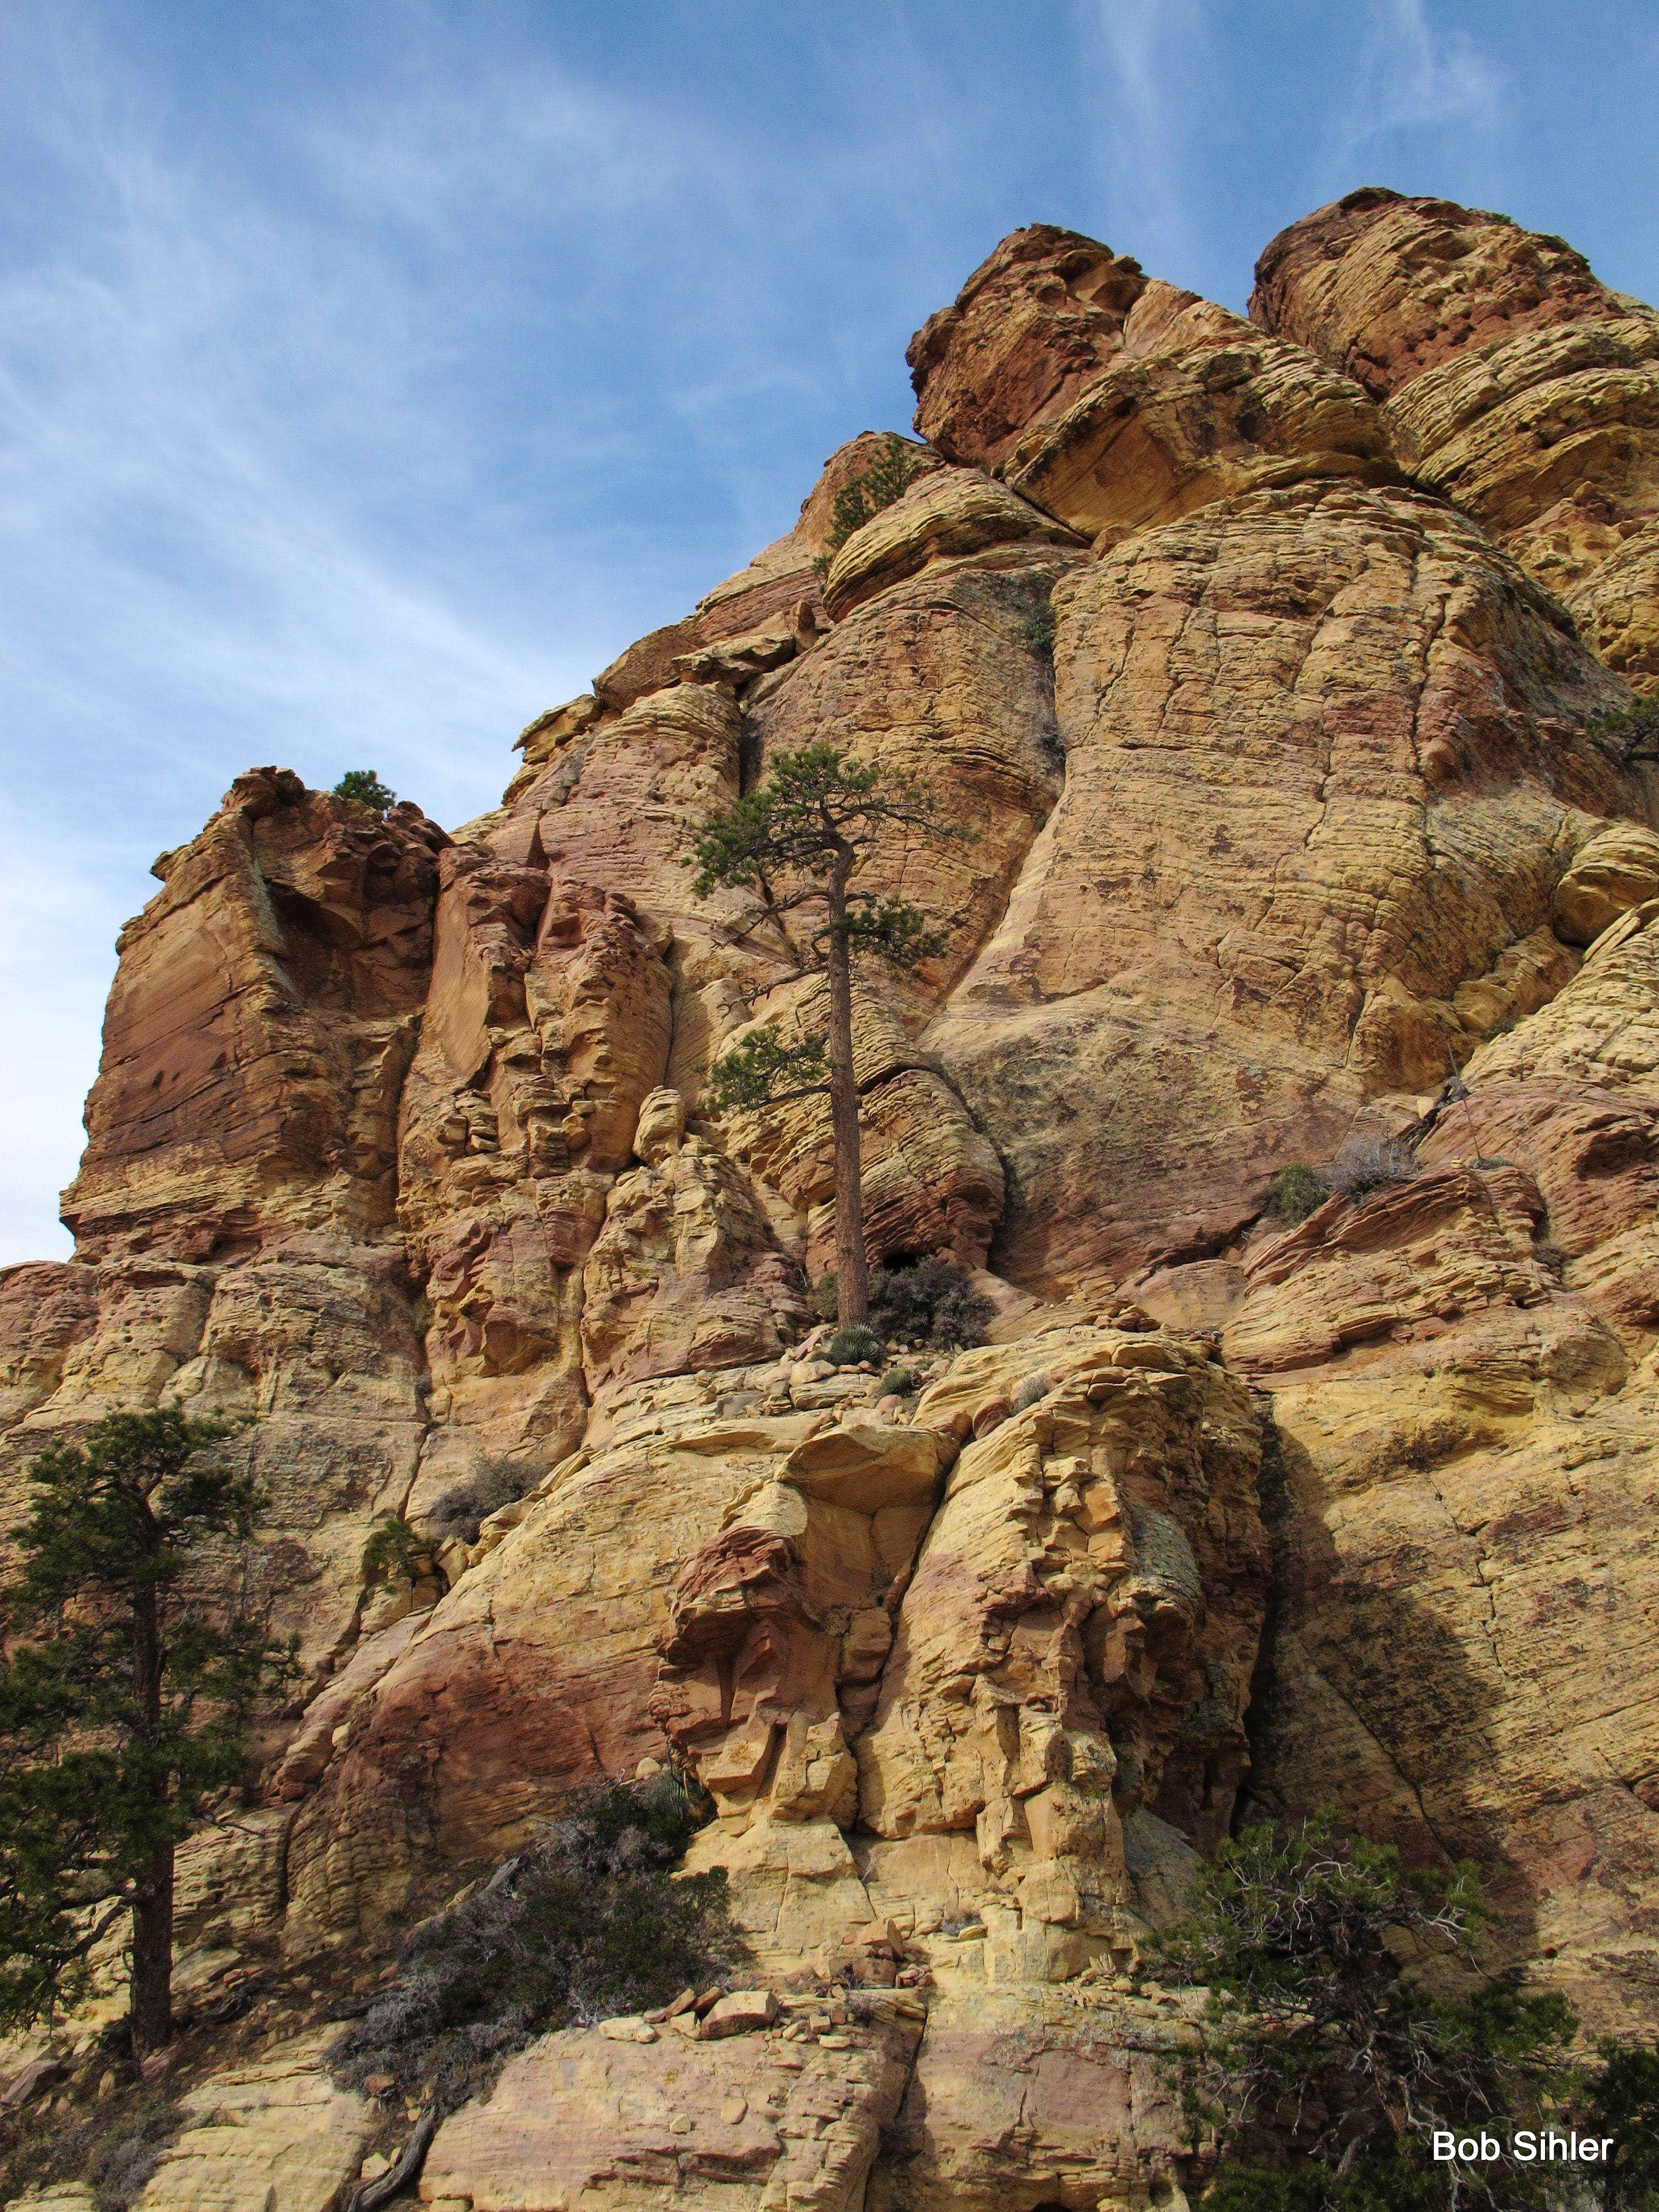 Via Oak Creek Canyon